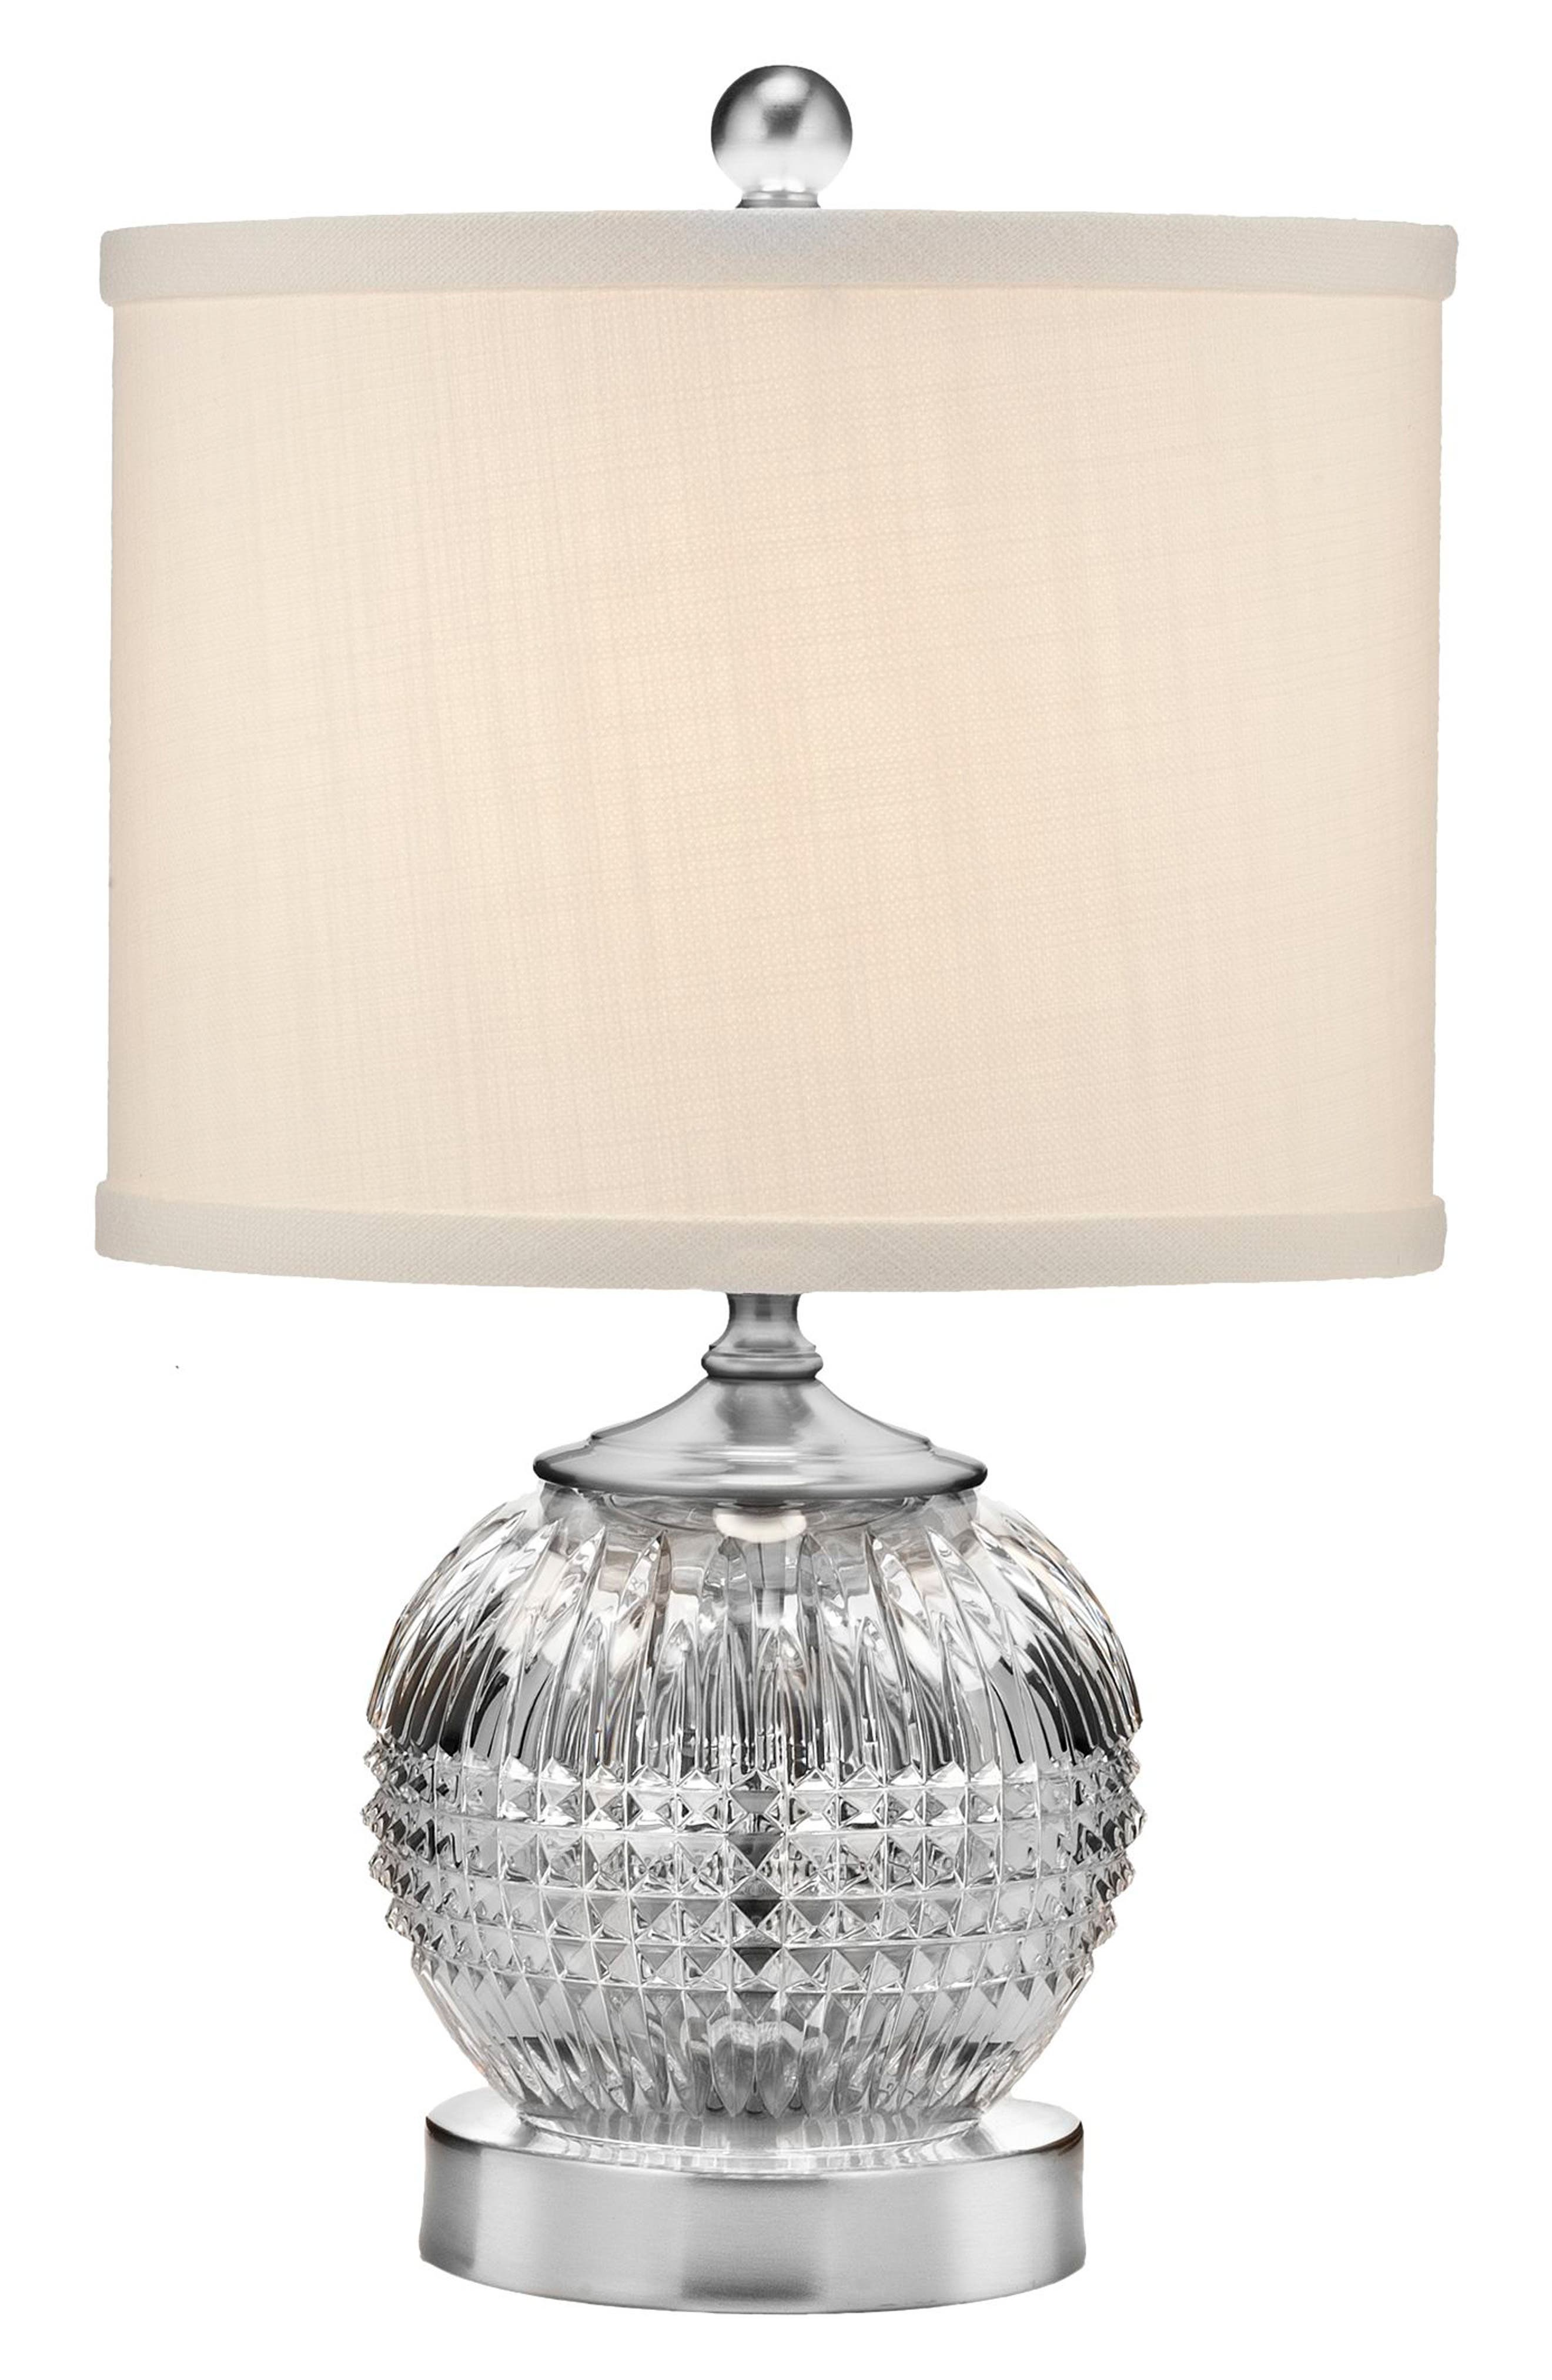 Waterford Lismore Diamond Mini Lead Crystal & Chrome Table Lamp